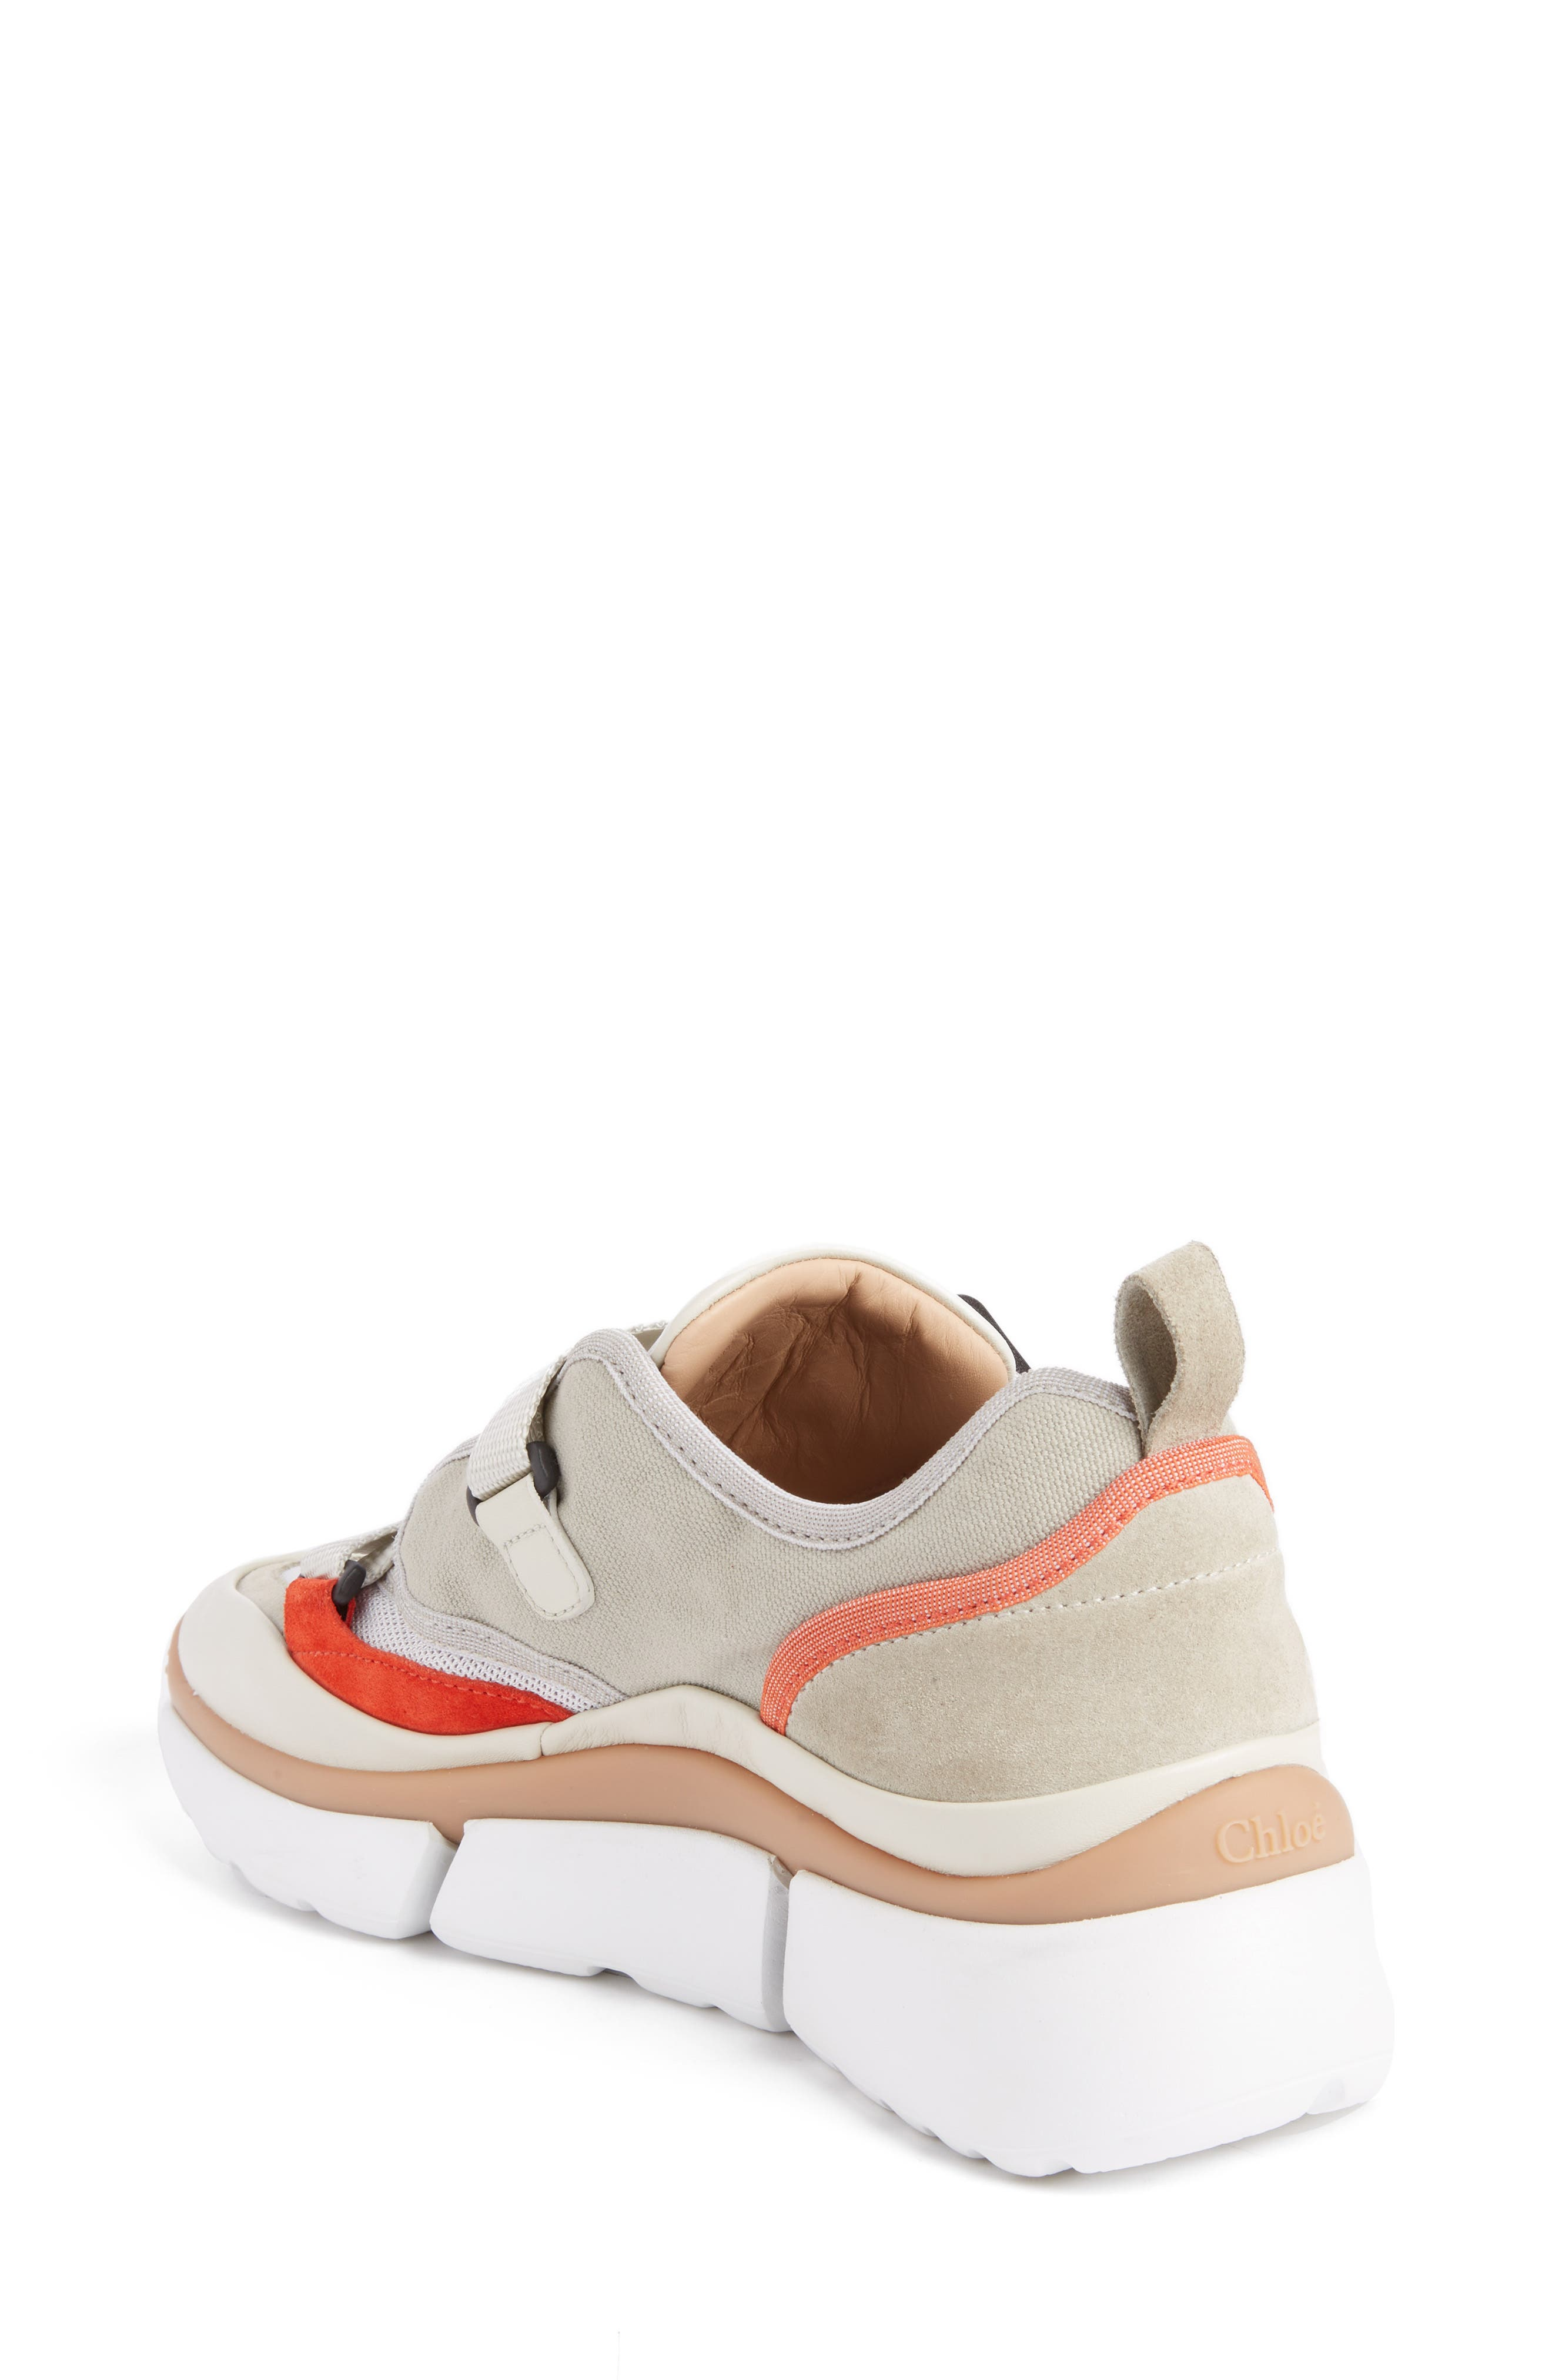 Sonnie Low Top Sneaker,                             Alternate thumbnail 2, color,                             LIGHT EUCALYPTUS